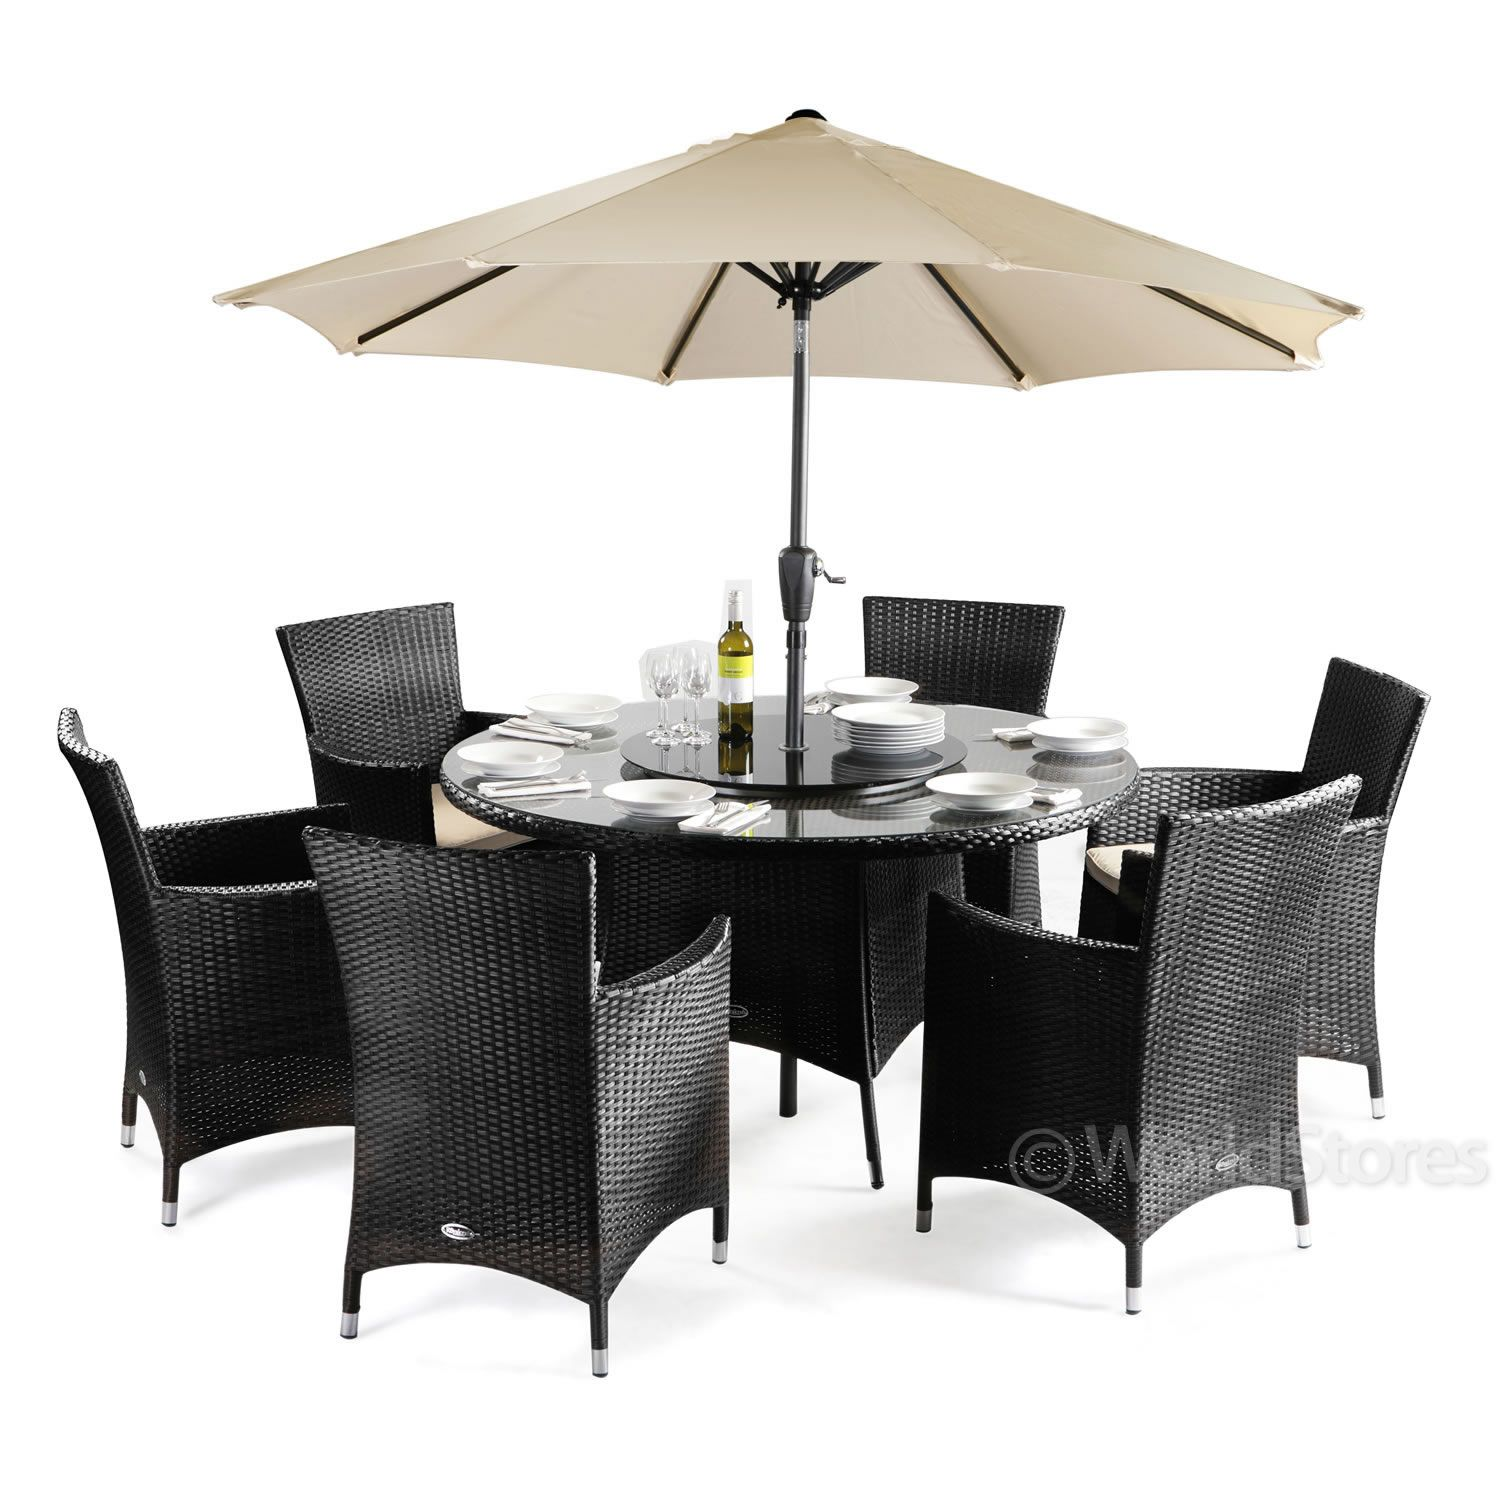 Bon Cannes Rattan Round 6 Seater Dining Set U2013 Next Day Delivery Cannes Rattan  Round 6 Seater